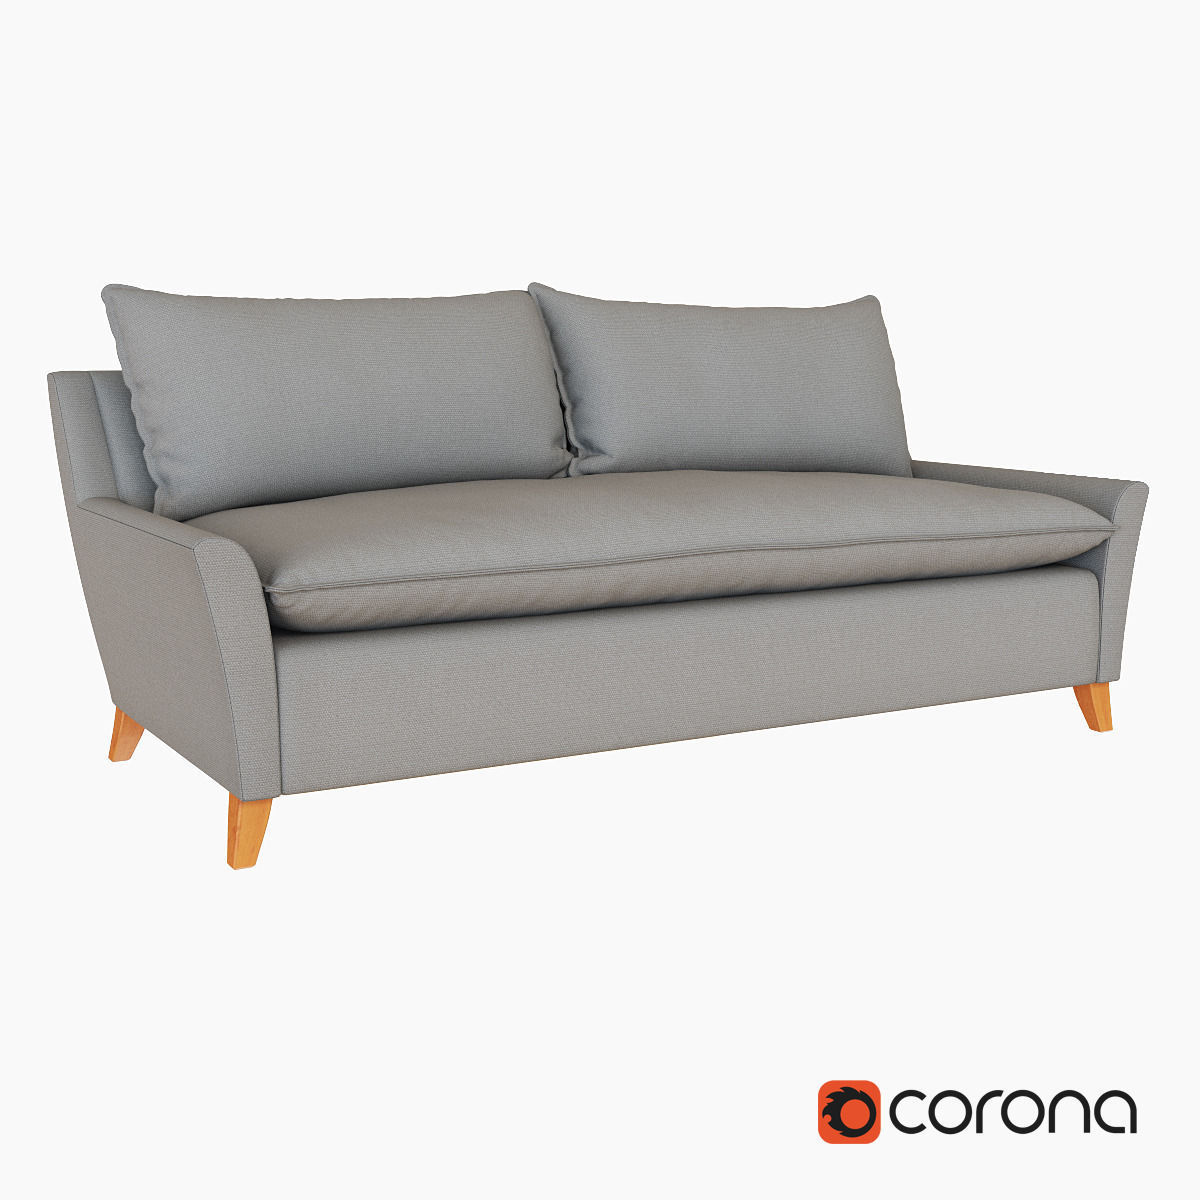 West Elm Bliss Down-Filled Sofa 3D